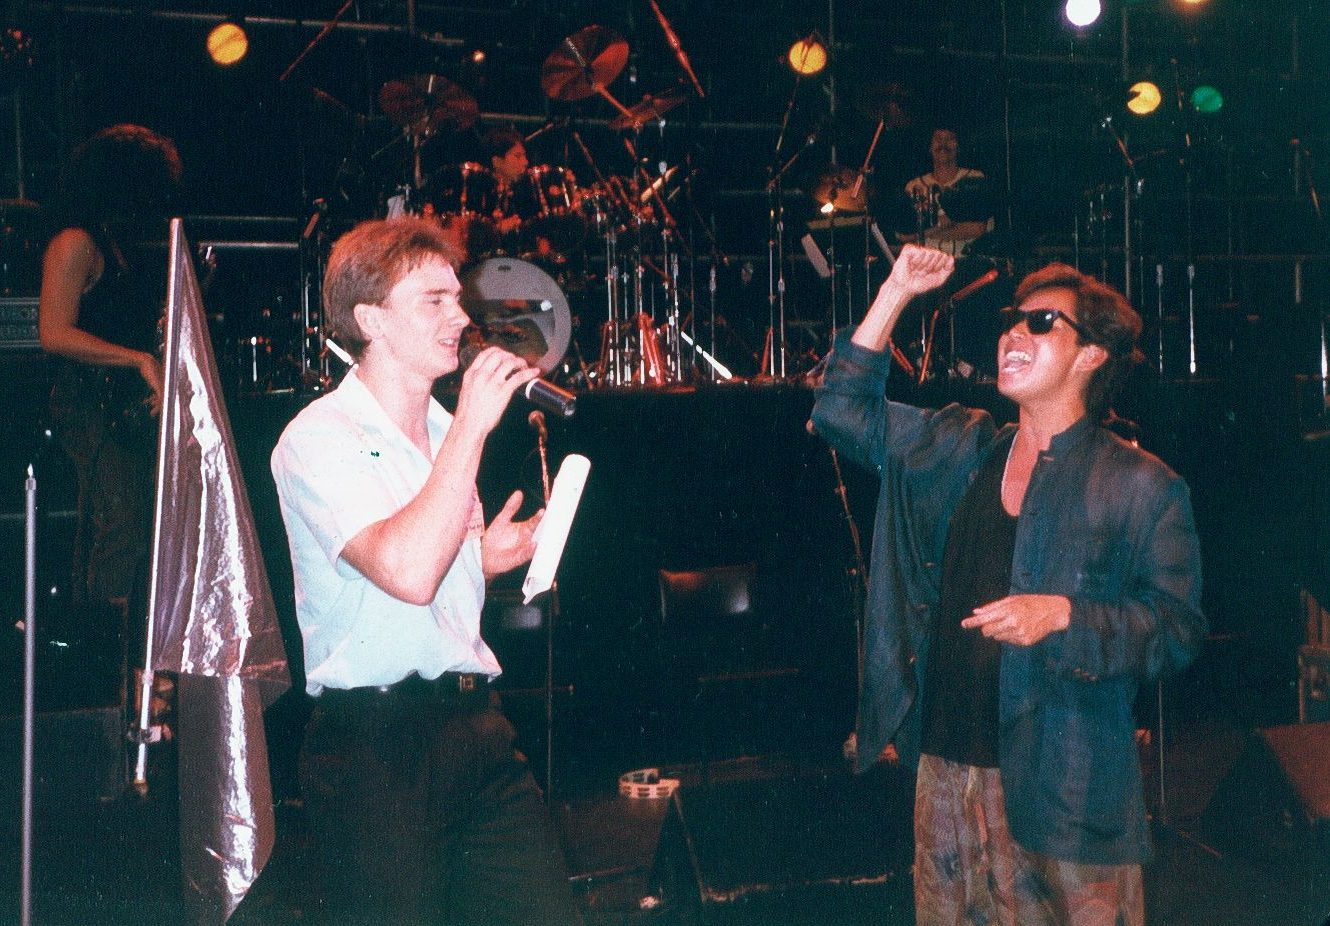 Gregory Rivers, left, on stage with Cantopop superstar Alan Tam in 1986 in Sydney, Australia.